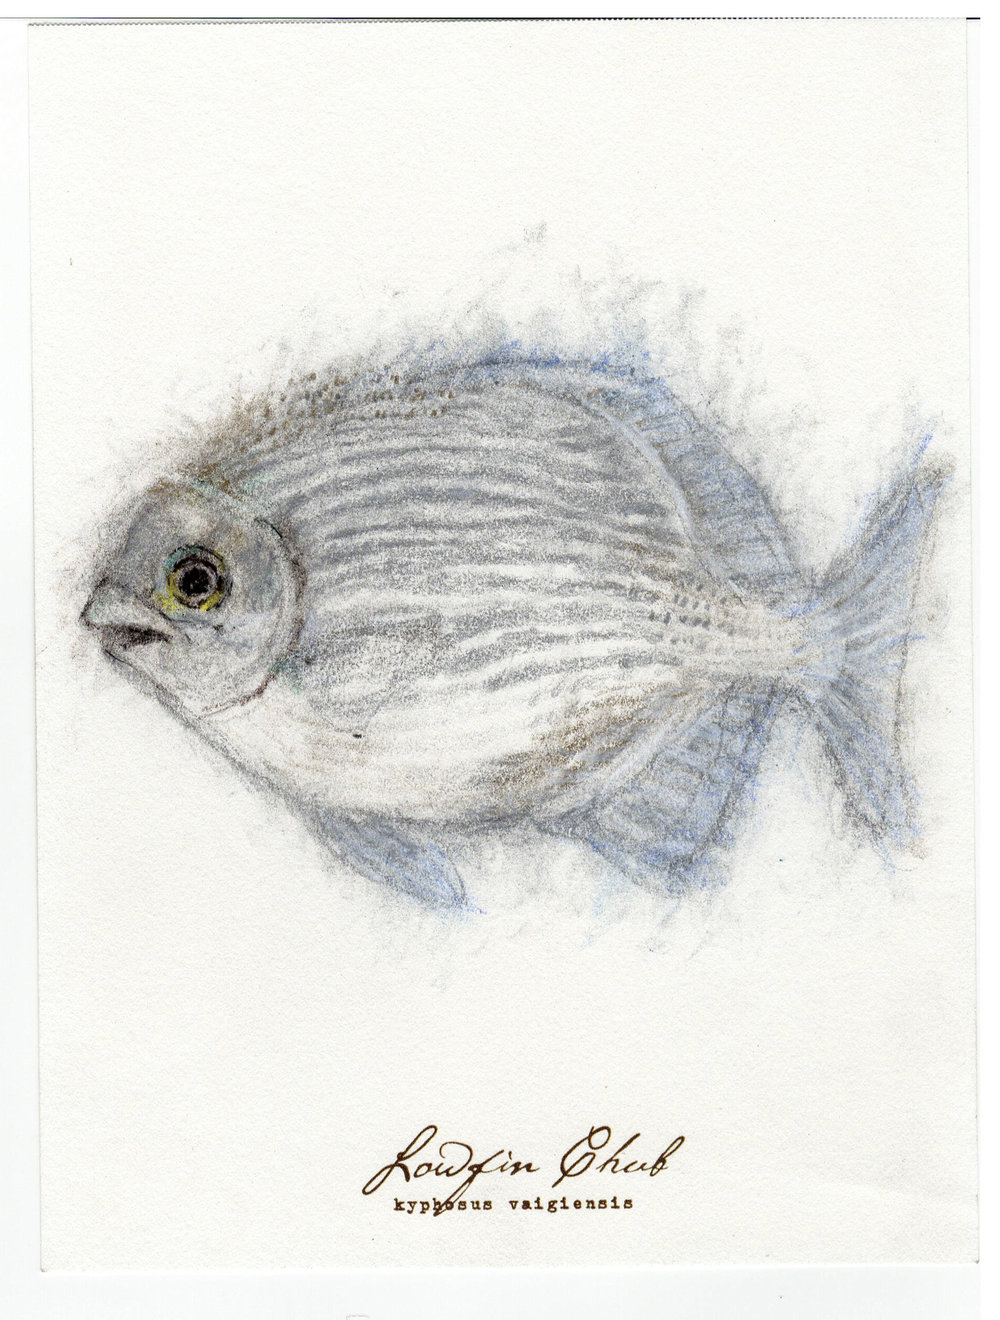 "Lowfin Chub, 2017 6"" x 8"" charcoal & prismacolor on paper"